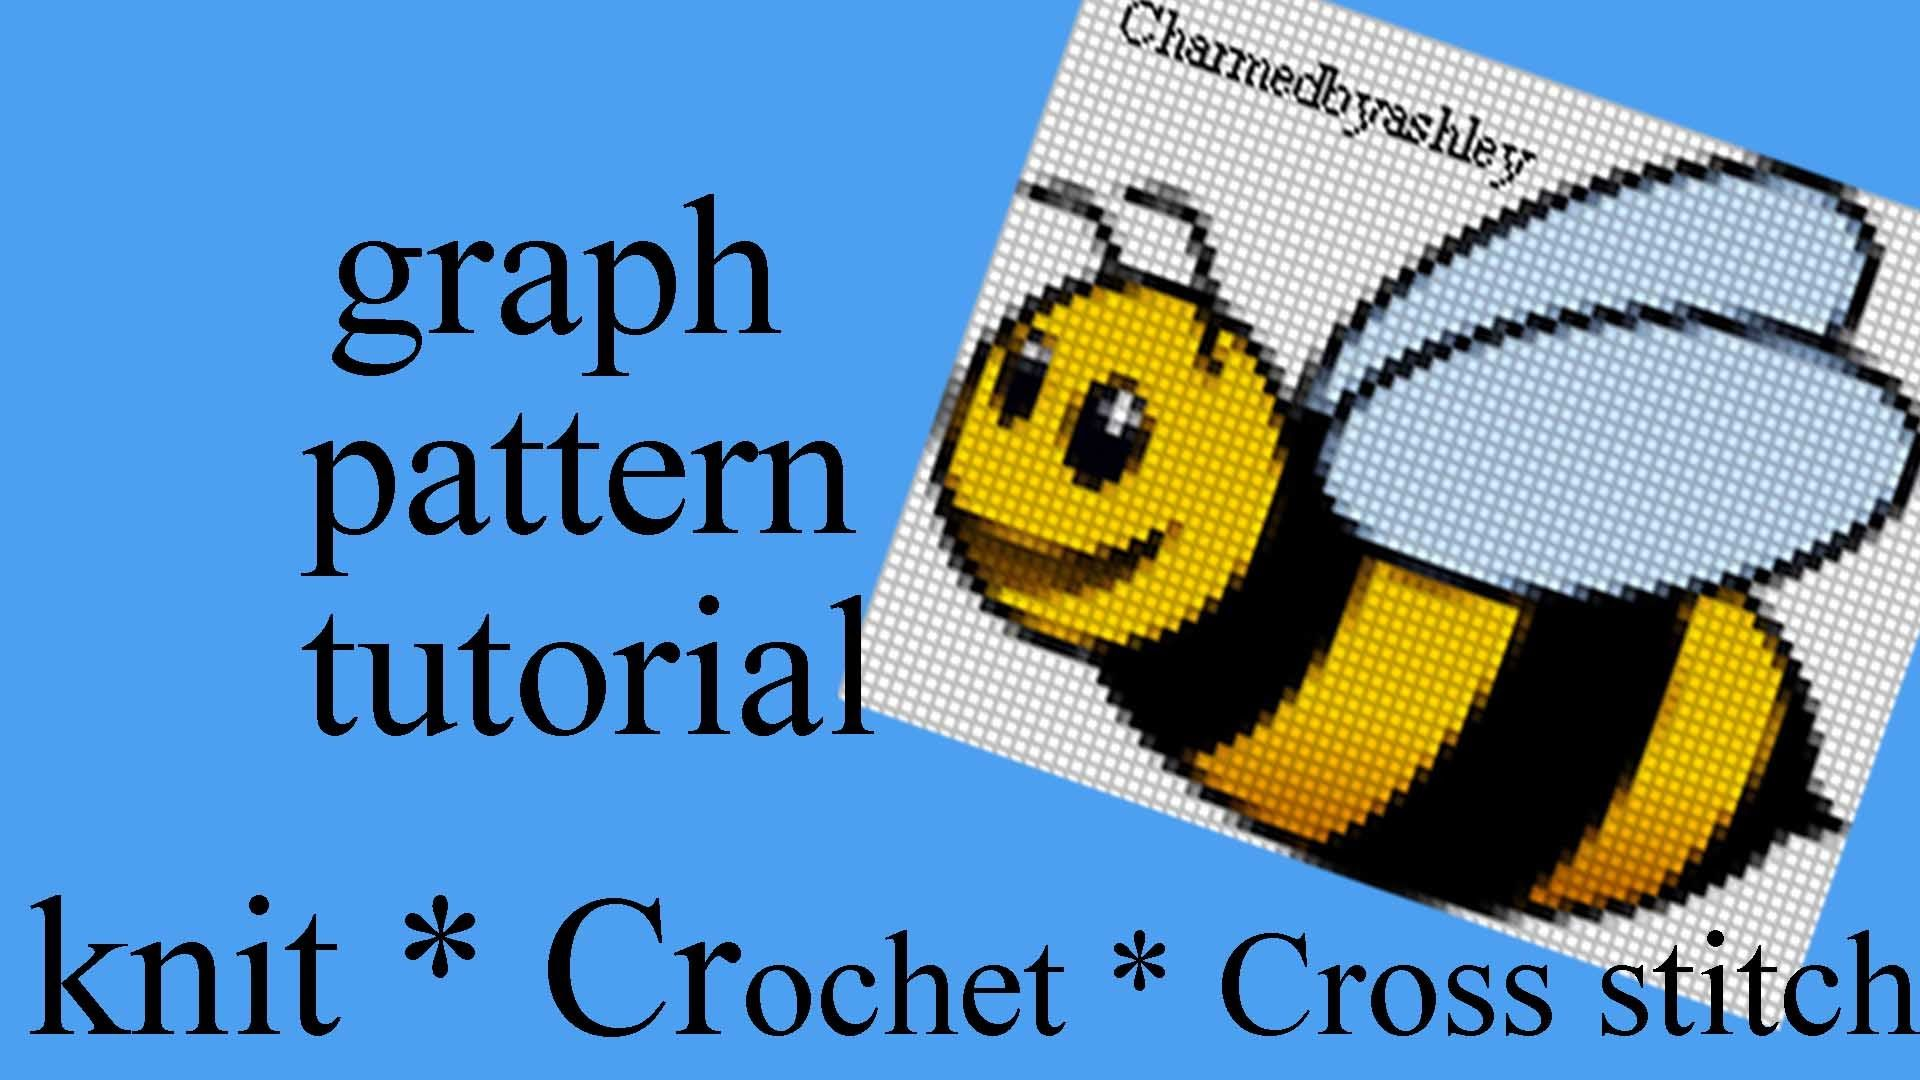 How To Create Crochet Cross Stitch Knit Graph Patterns